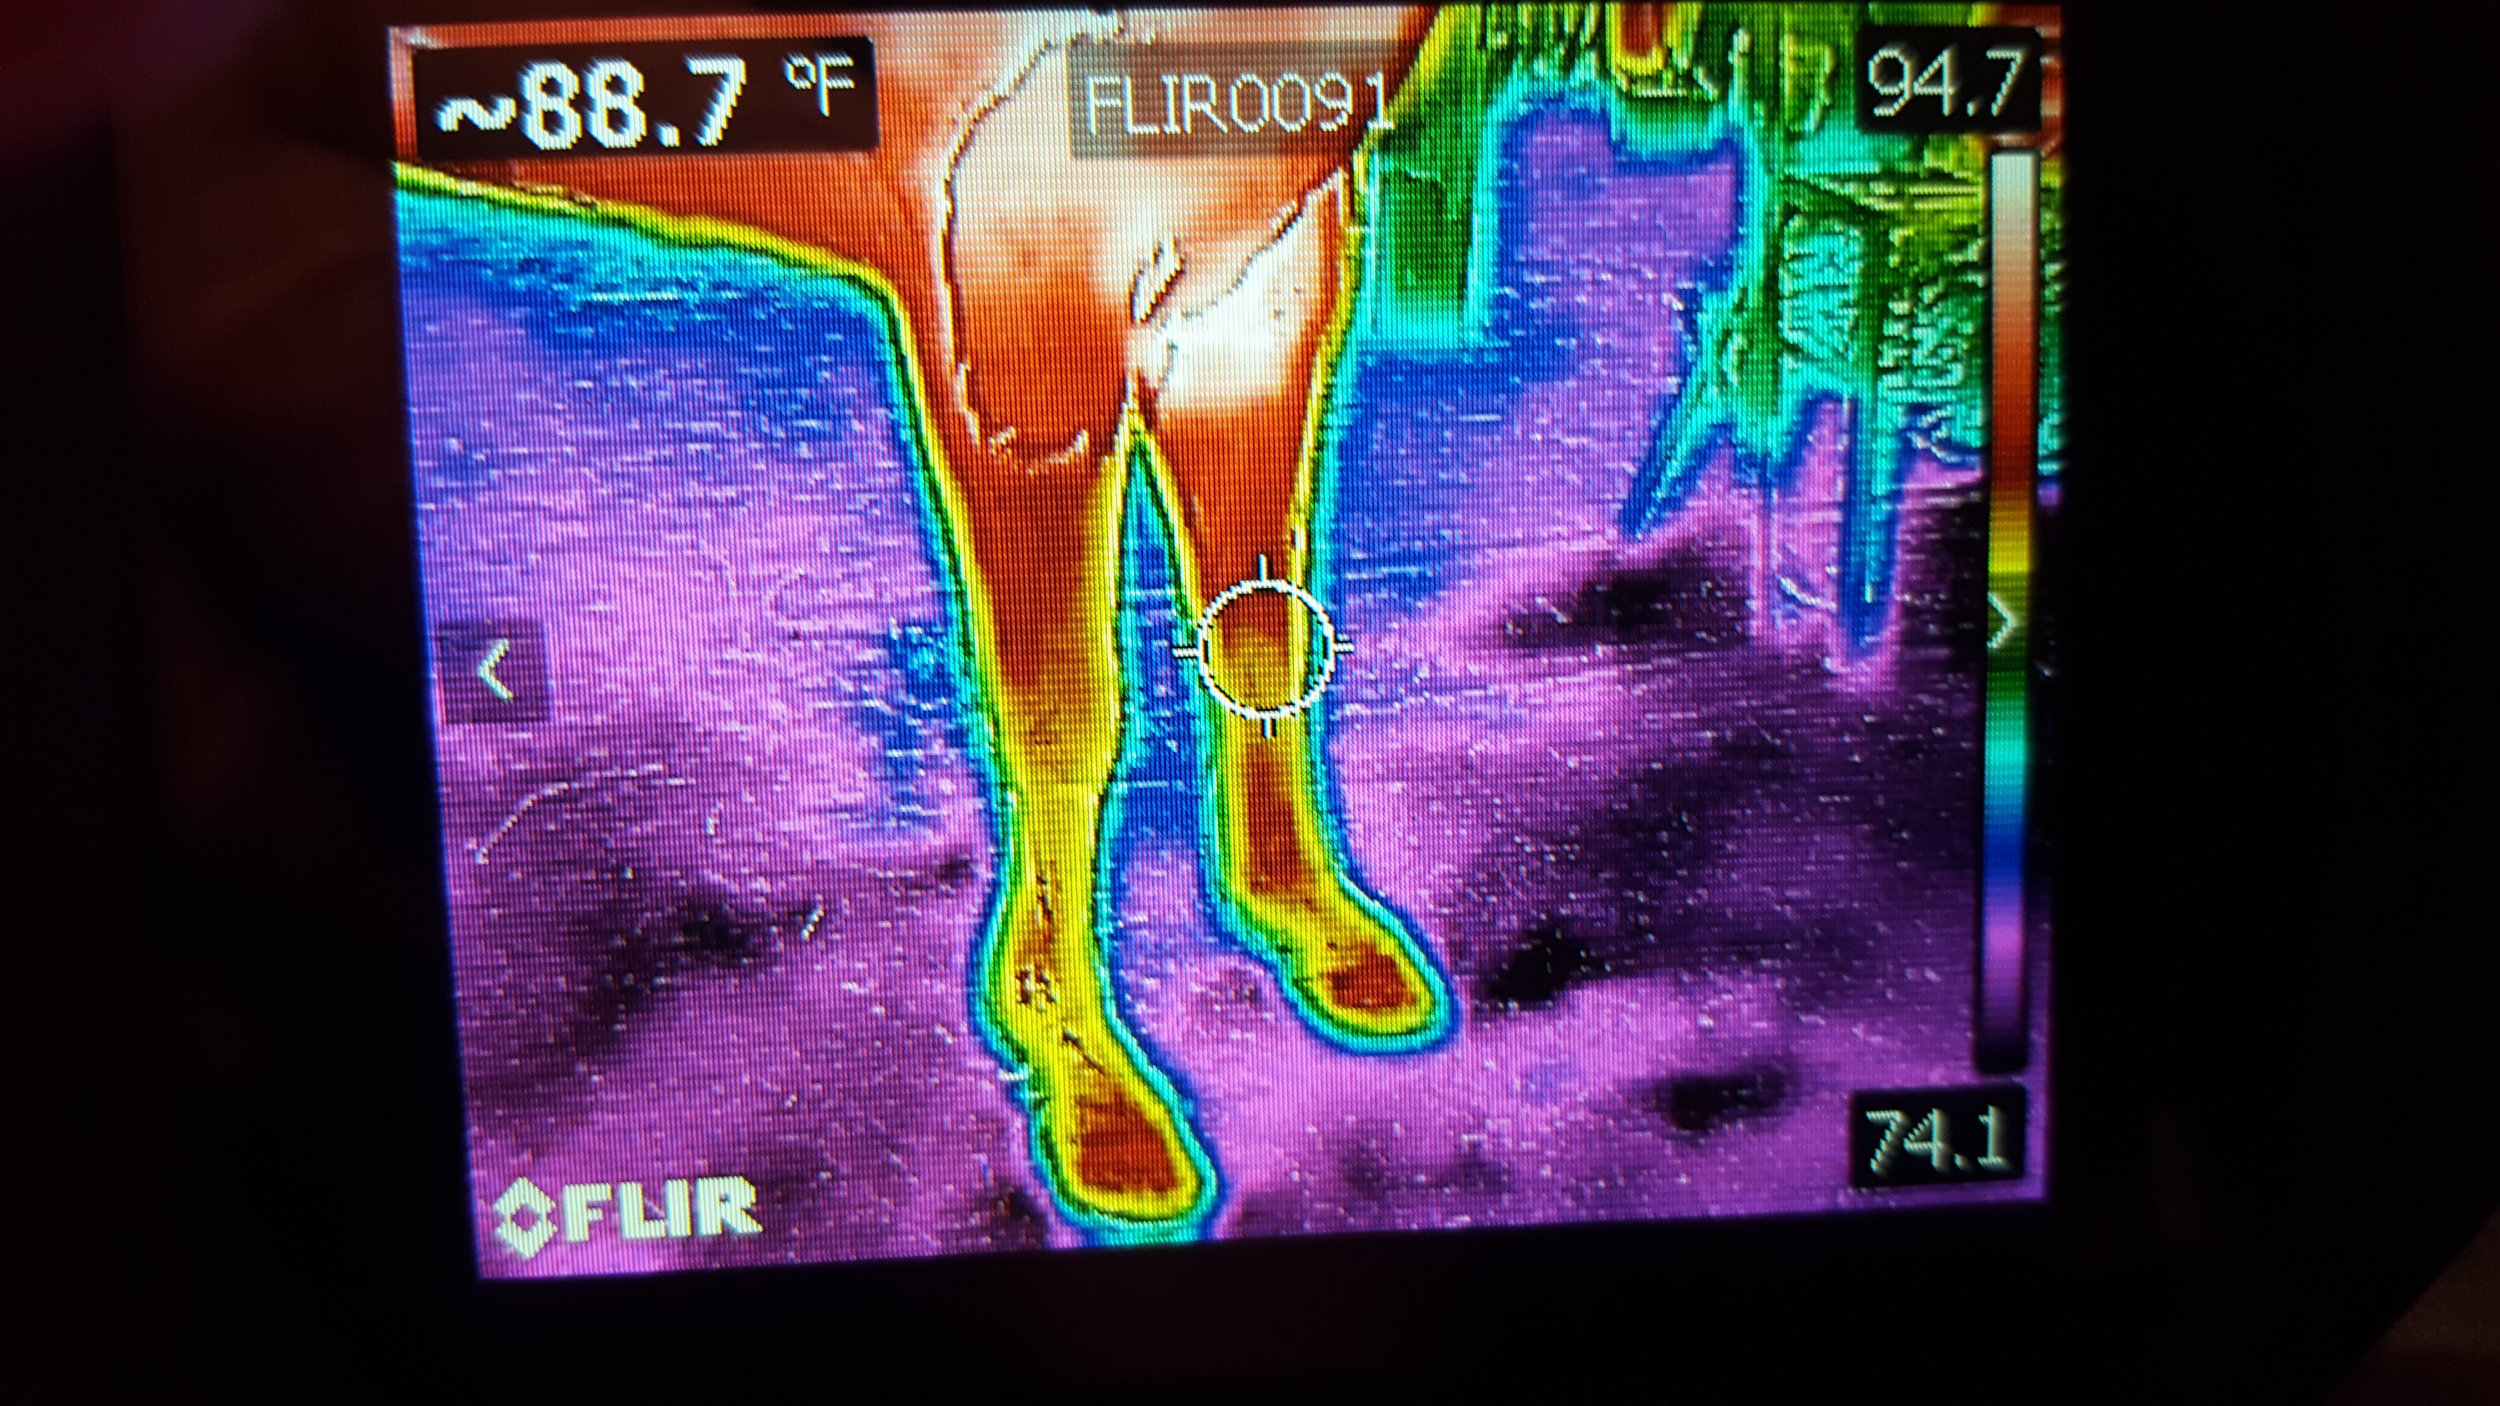 During the first 15 minutes of Equine Flexion Therapy:  This picture shows improved blood circulation and better movement from the horse.